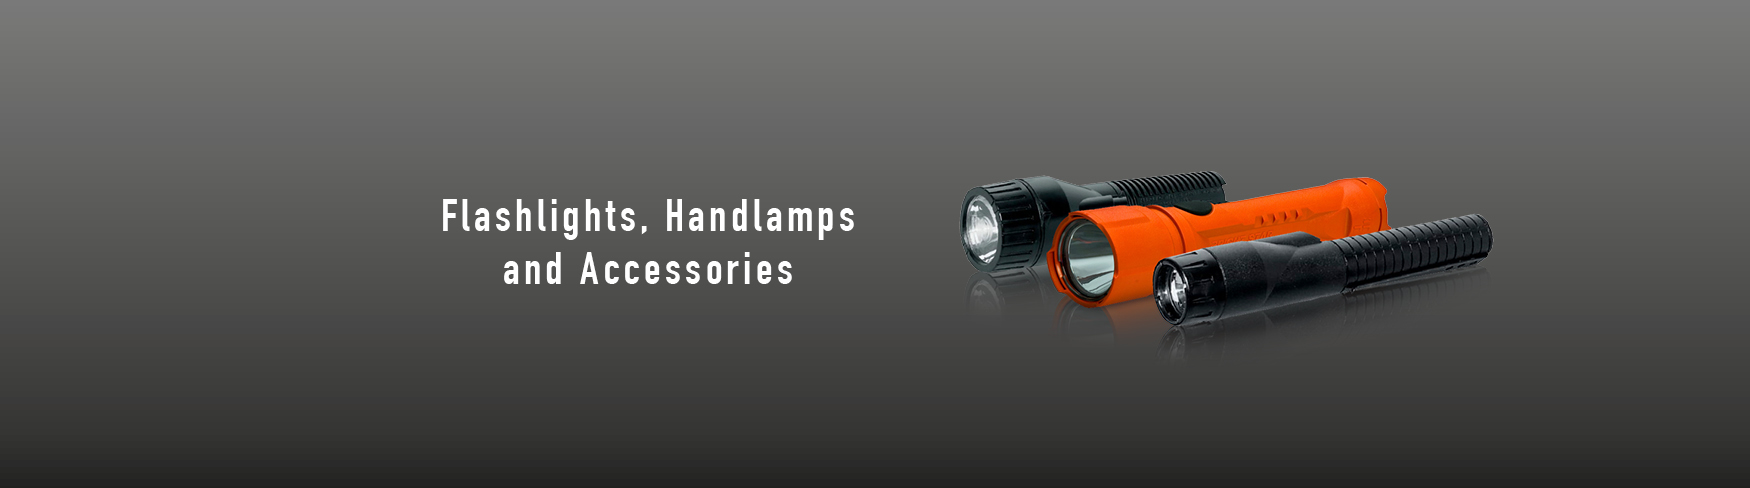 Flashlights, Handlamps and Accessories